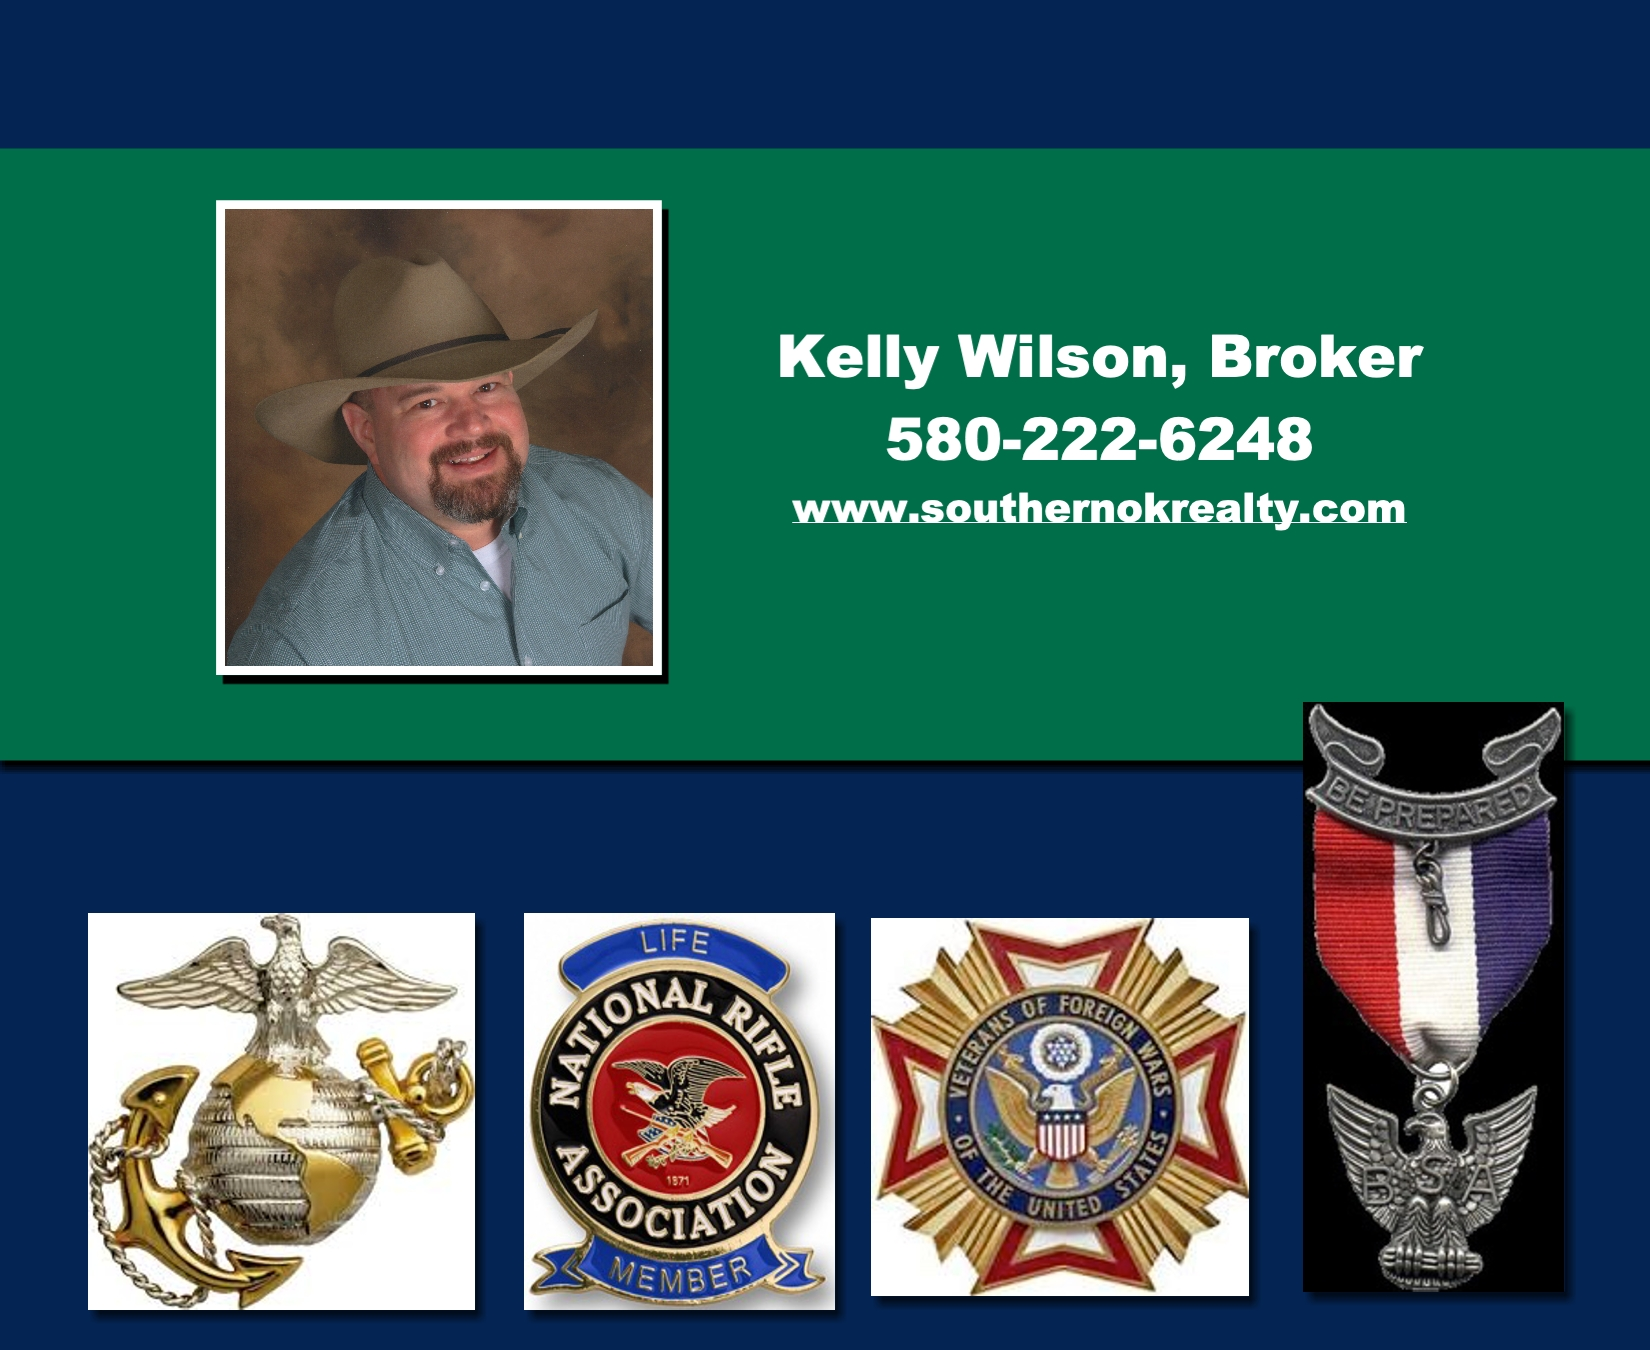 Kelly Wilson US Marine Eagle Scout Member VFW Life member NRA Experienced Real Estate Agent